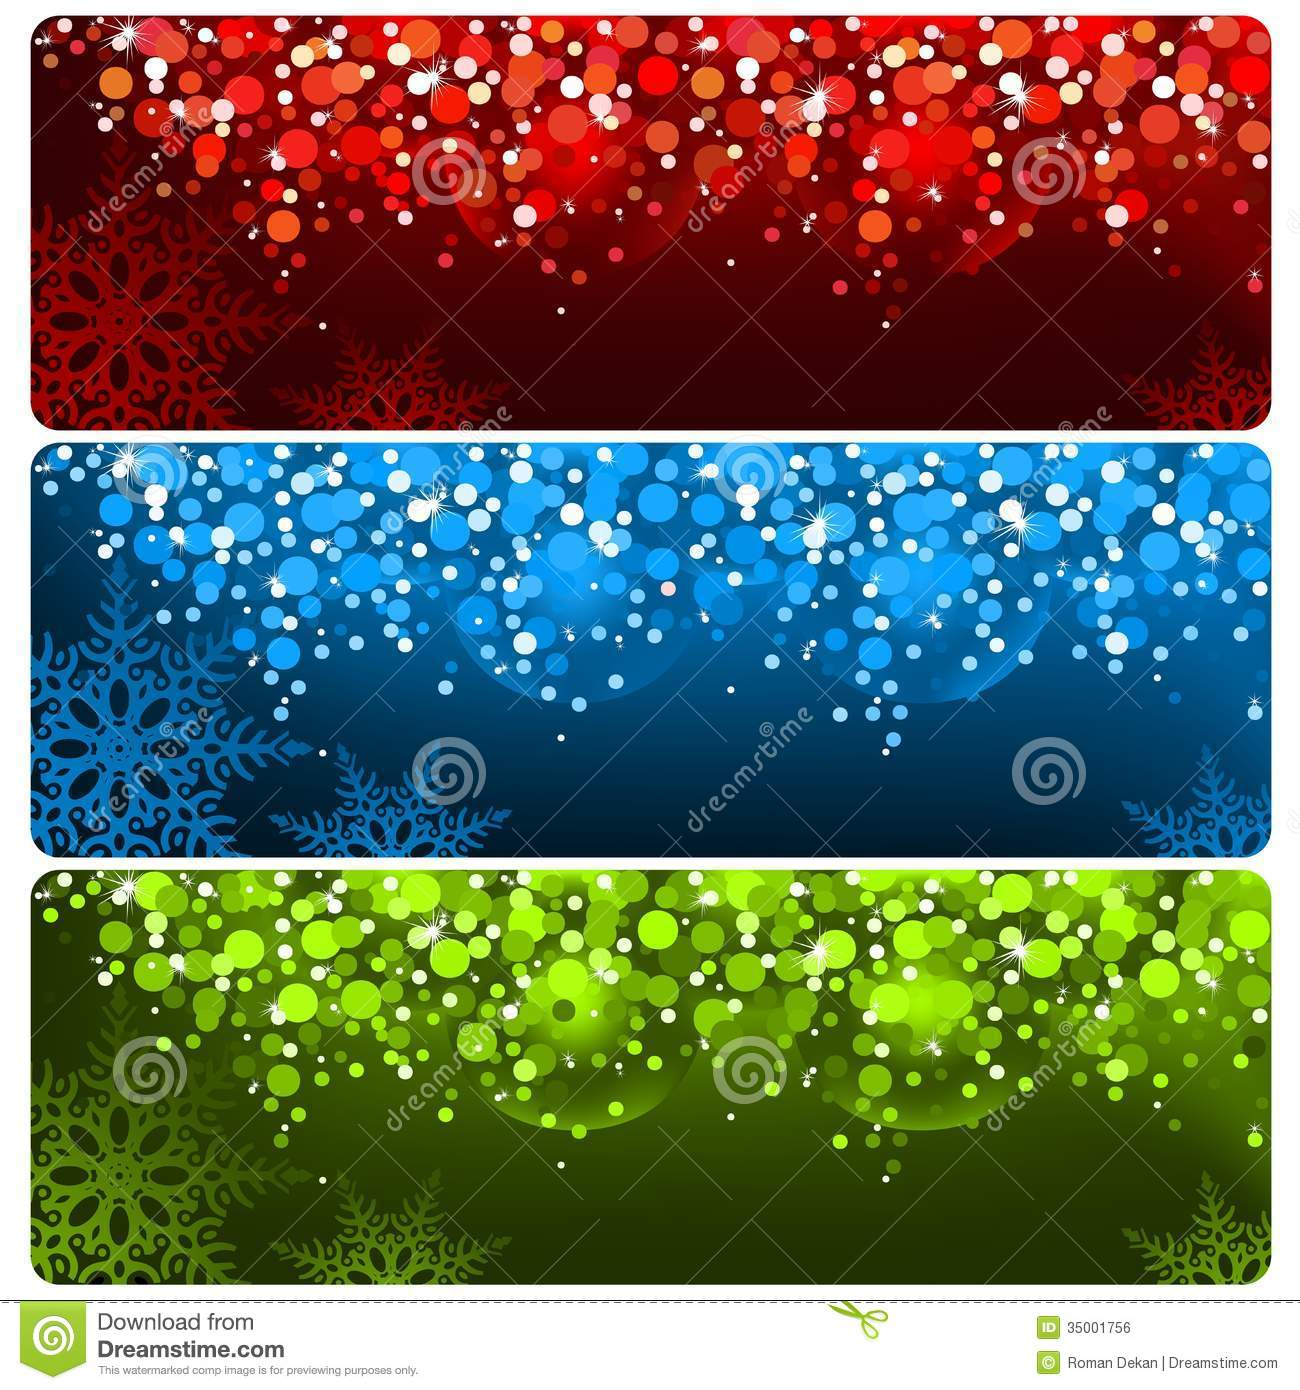 abstract christmas banner stock vector. illustration of celebration